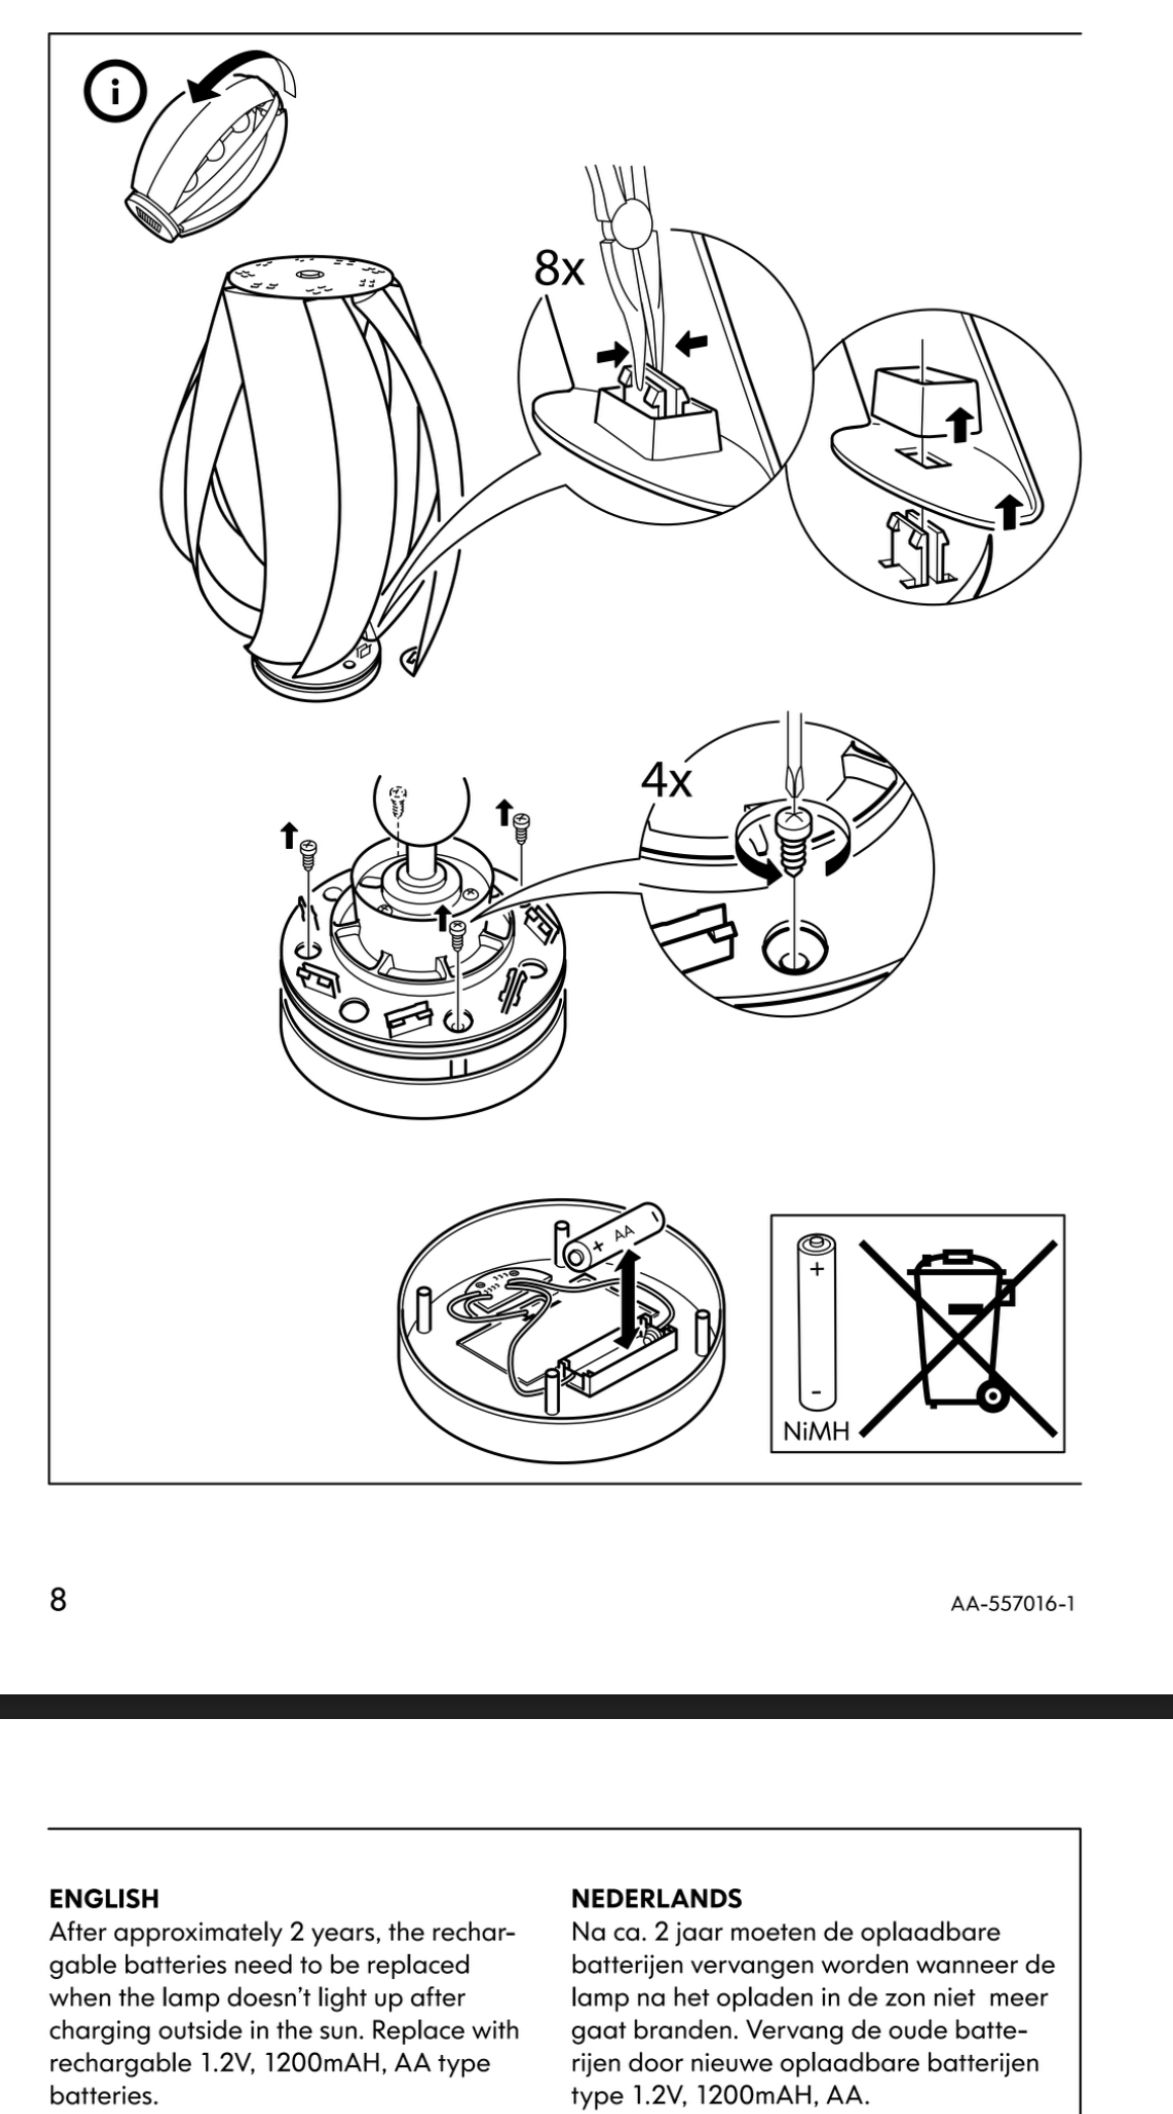 Disassembly* instructions for the #IKEA #SOLVINDEN #wind